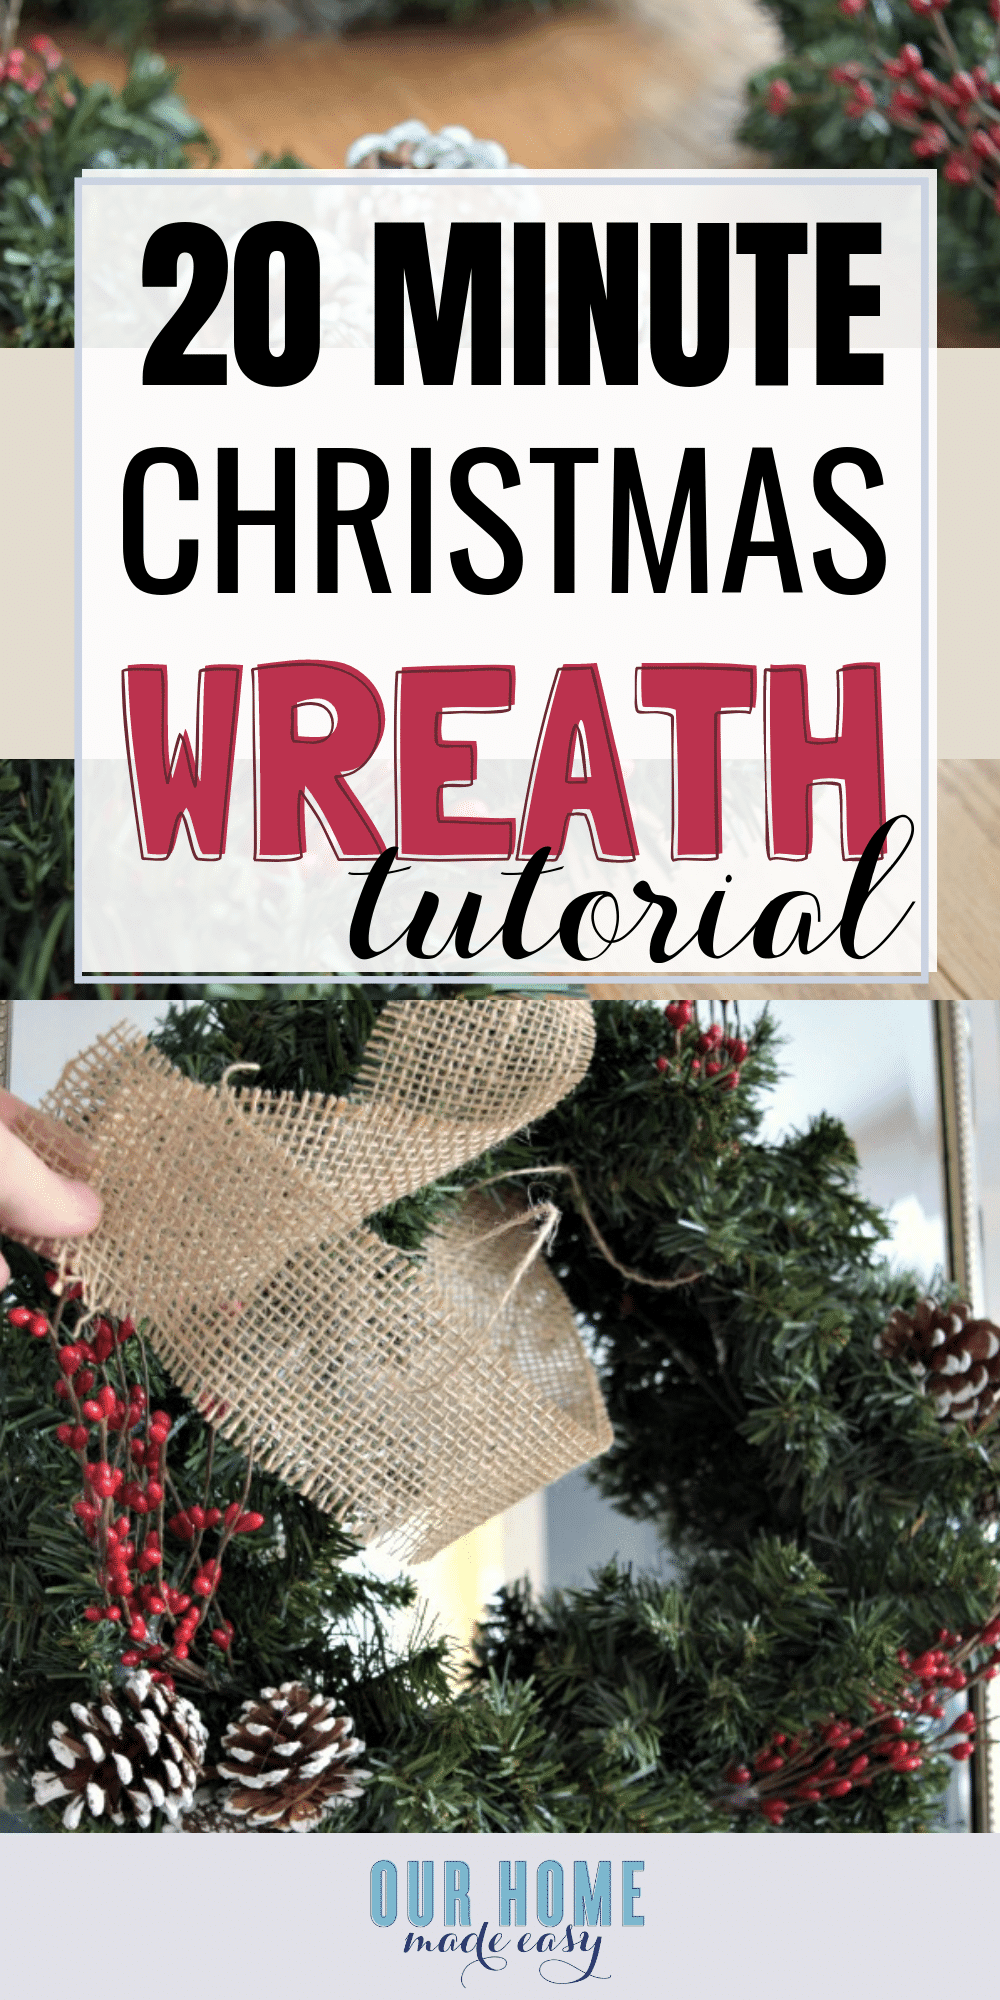 Make this quick Christmas wreath for just a few dollars! Budget Christmas decor can still look great! They look great hanging together. Click to see the tutorial for the wreaths! #christmas #home #wreath #homedecor